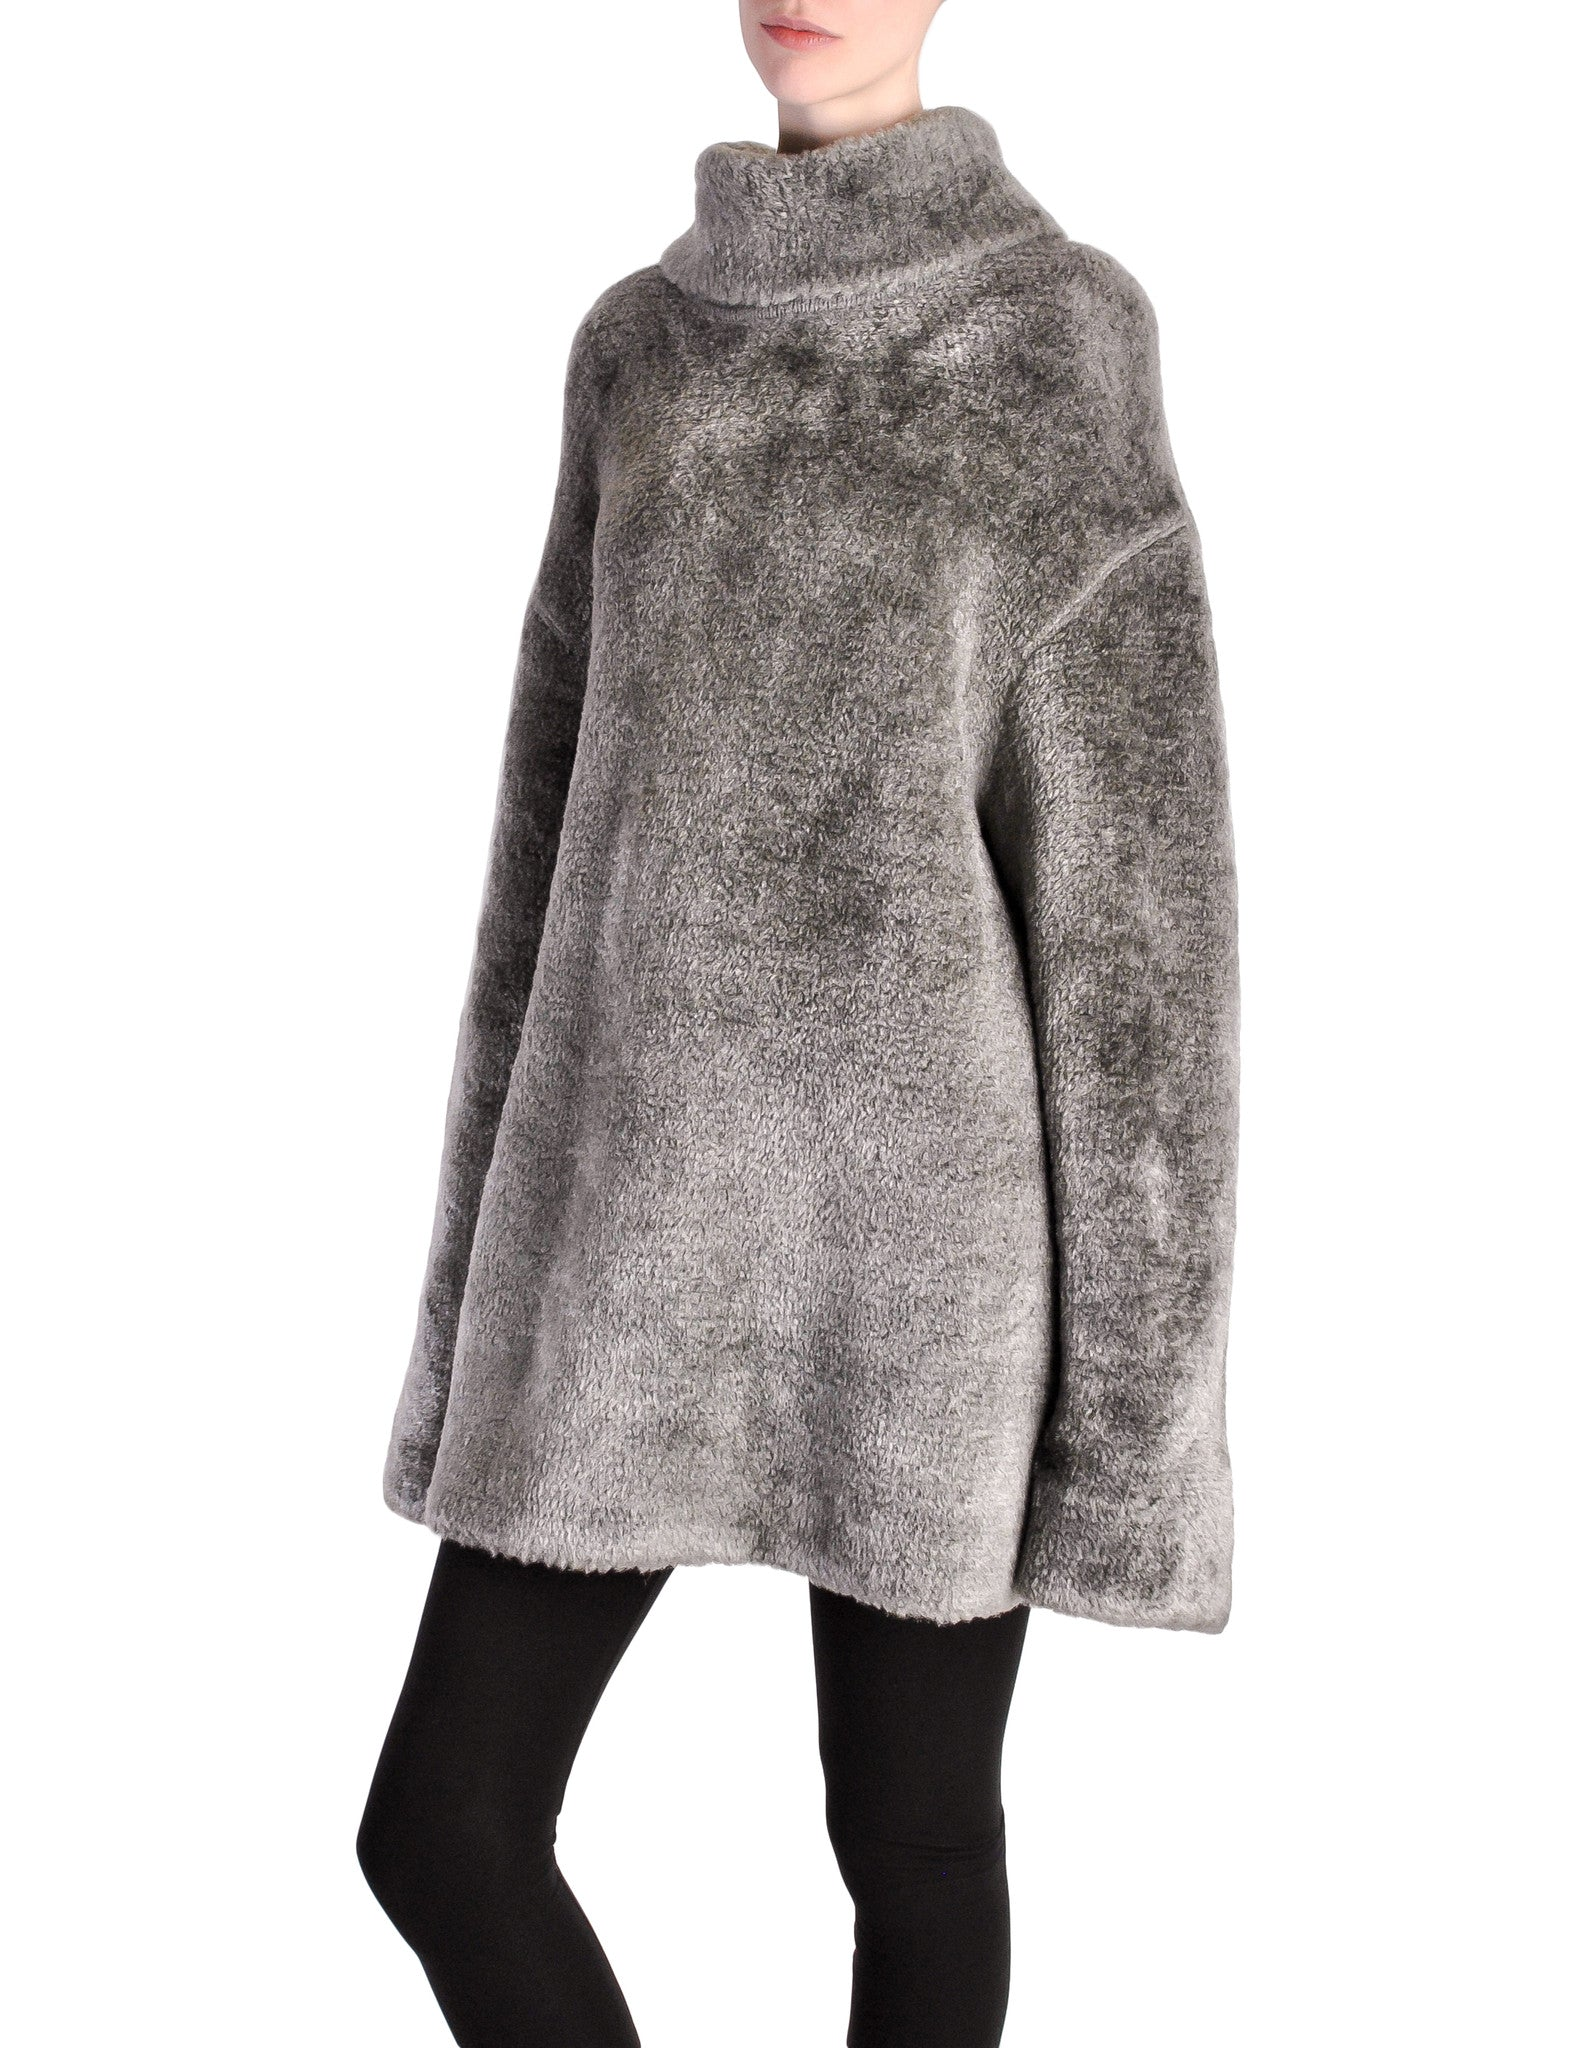 Alaïa Vintage Grey Fuzzy Oversized Turtleneck Sweater - Amarcord Vintage Fashion  - 1